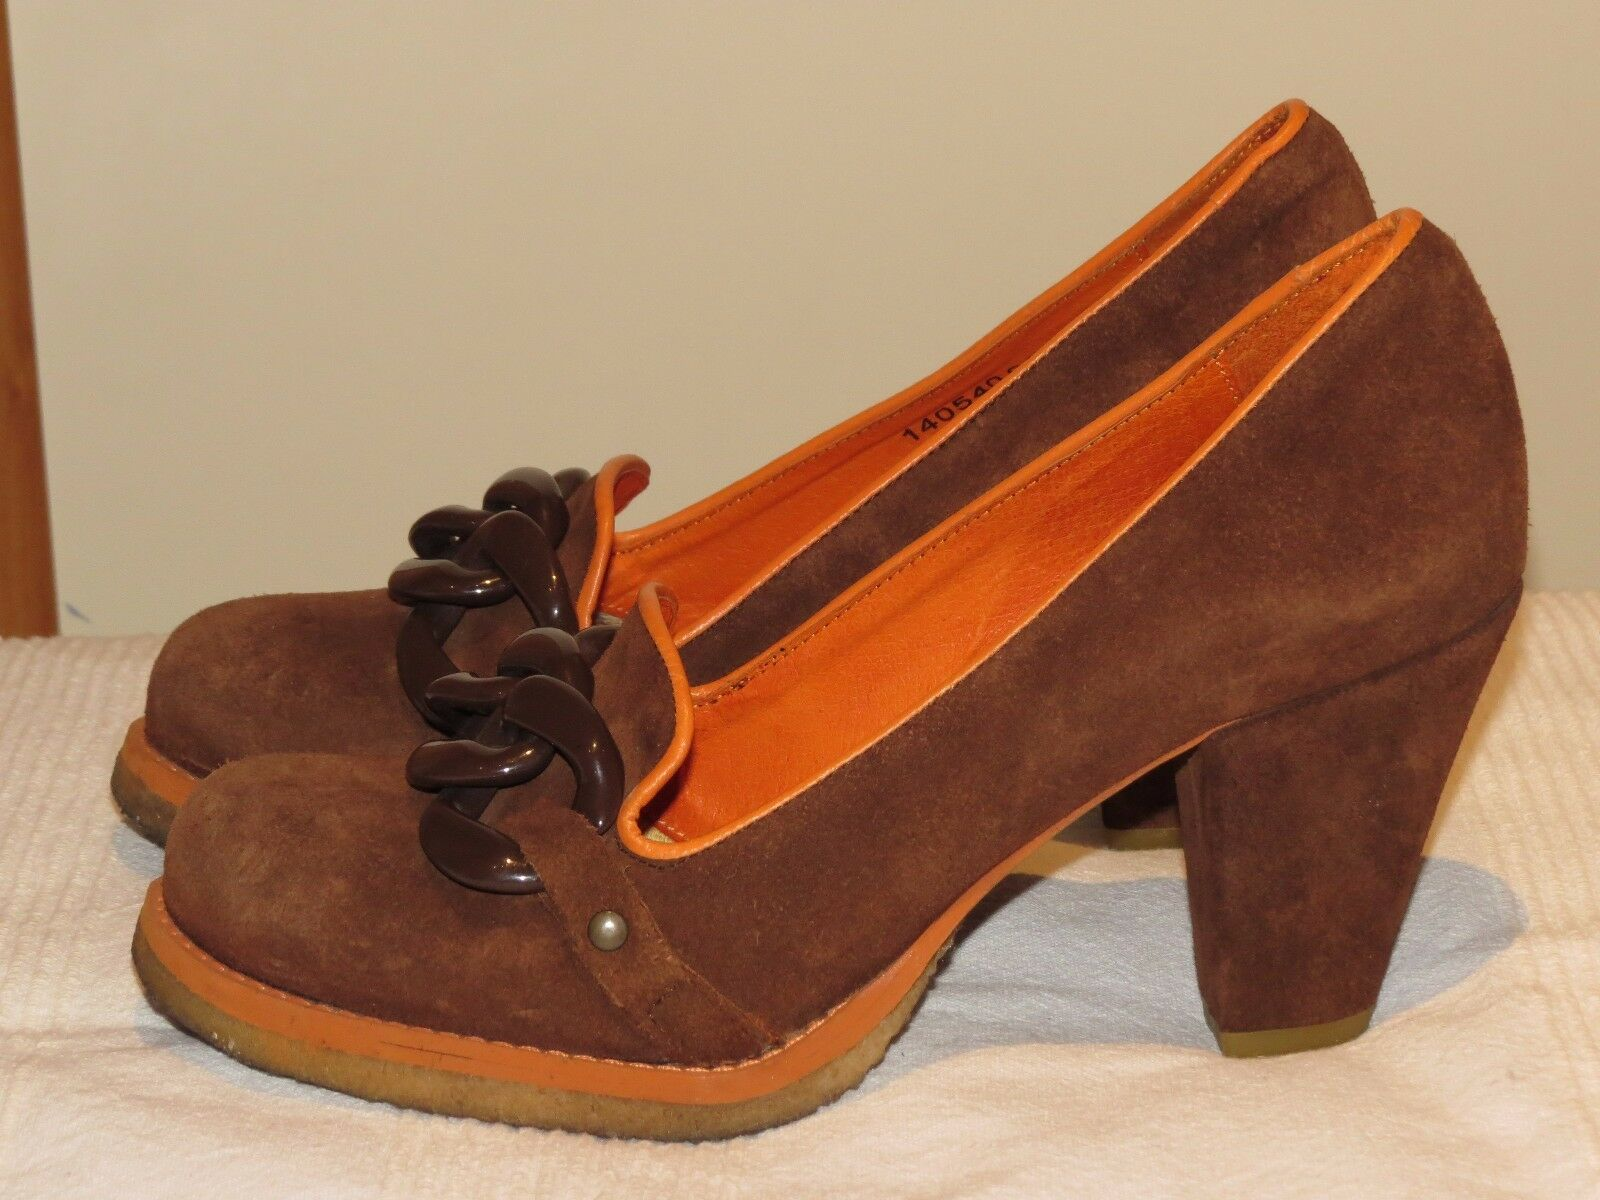 FLY LONDON FLY GIRL SHOES BROWN SUEDE LEATHER COURT SHOES GIRL 3